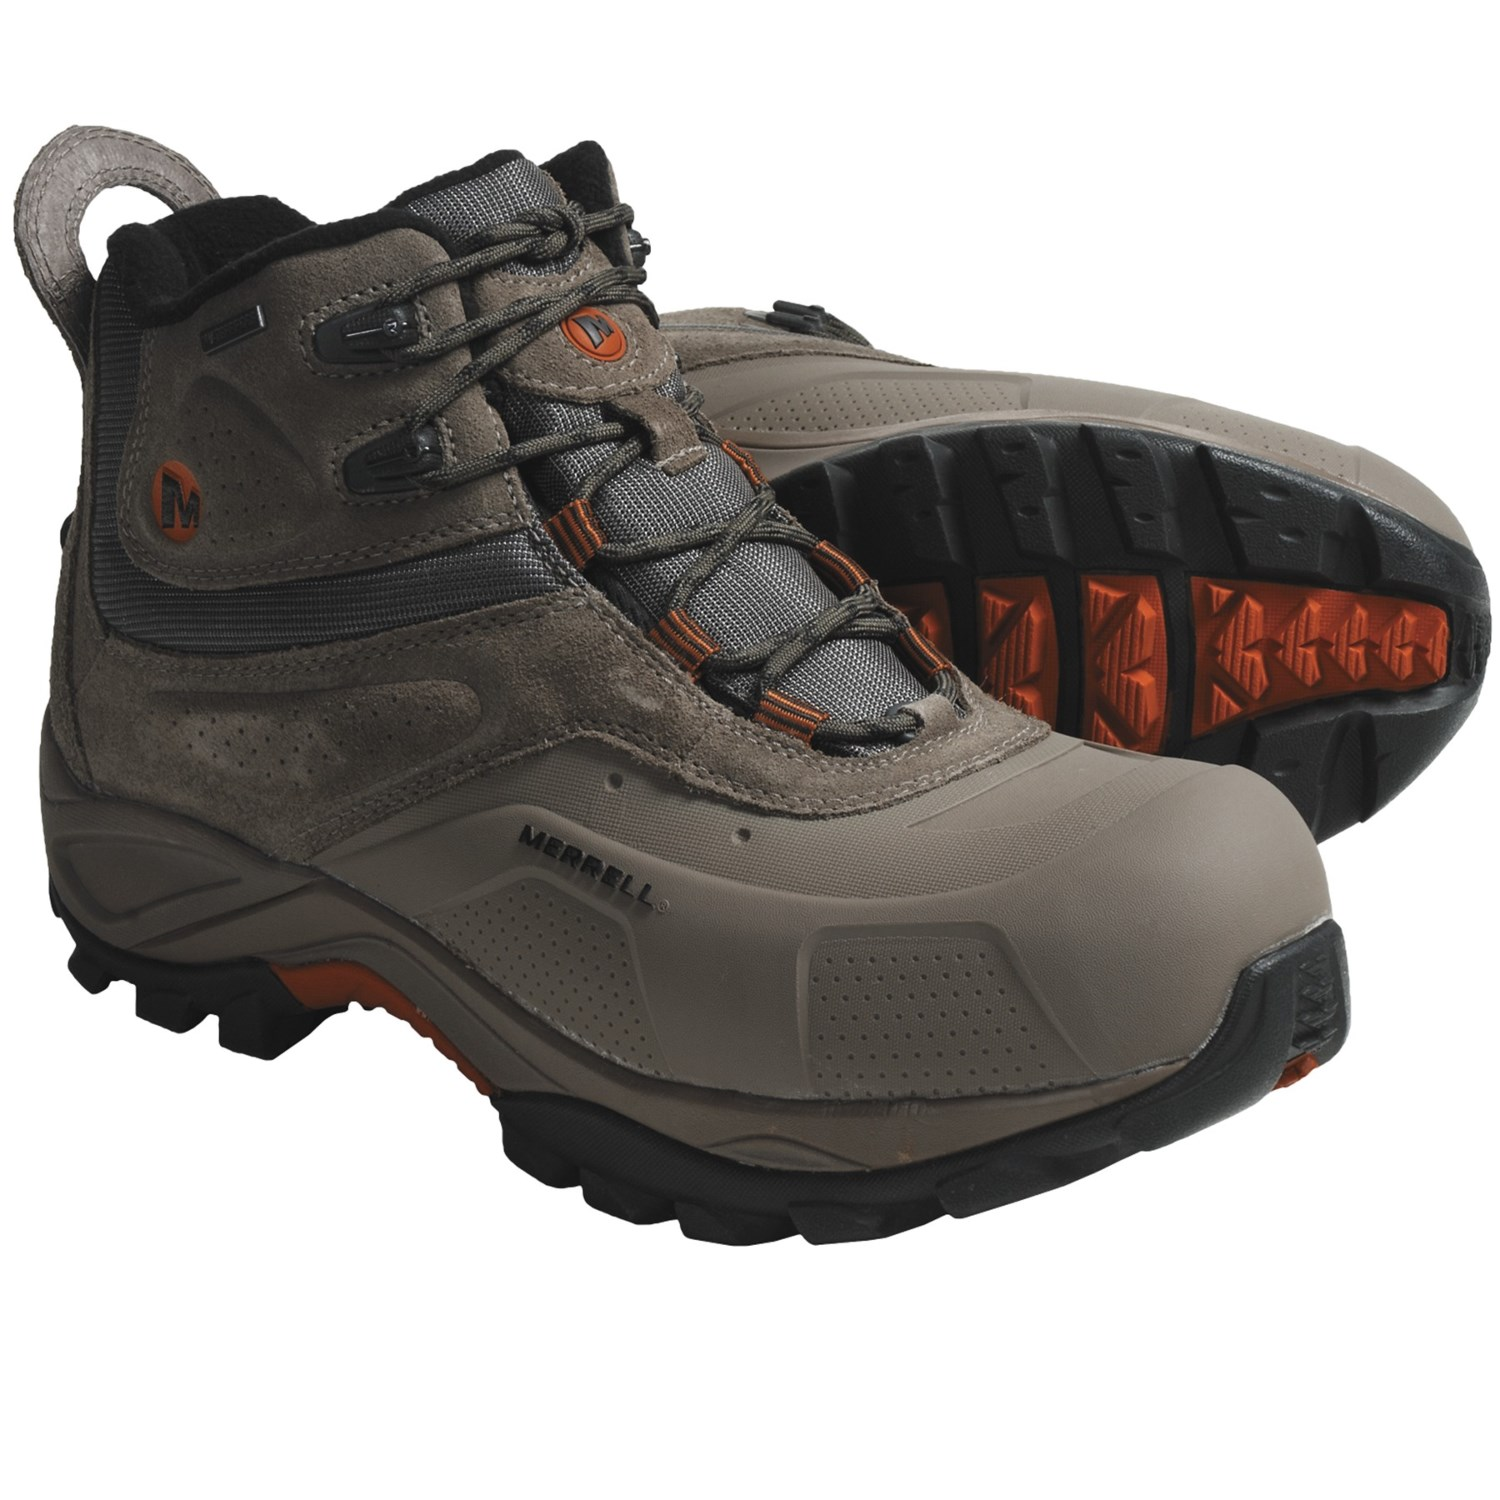 Merrell Men&39s Thermo 6 Waterproof Winter Boots | Homewood Mountain